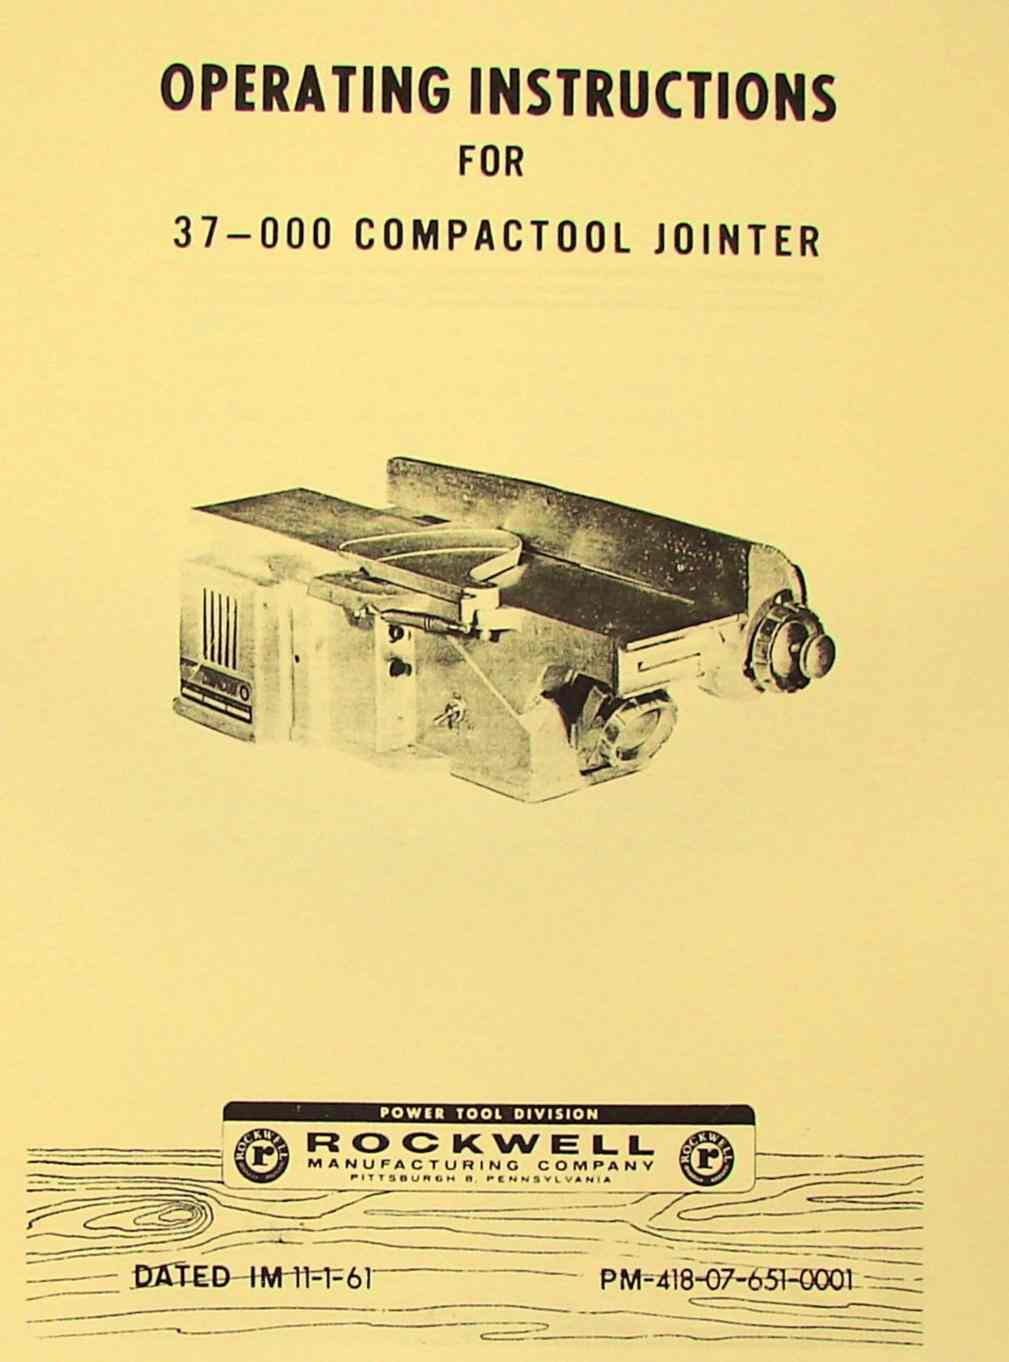 ROCKWELL 37-000 Compactool Jointer Parts Manual | Ozark Tool Manuals & BooksOzark Tool Manuals